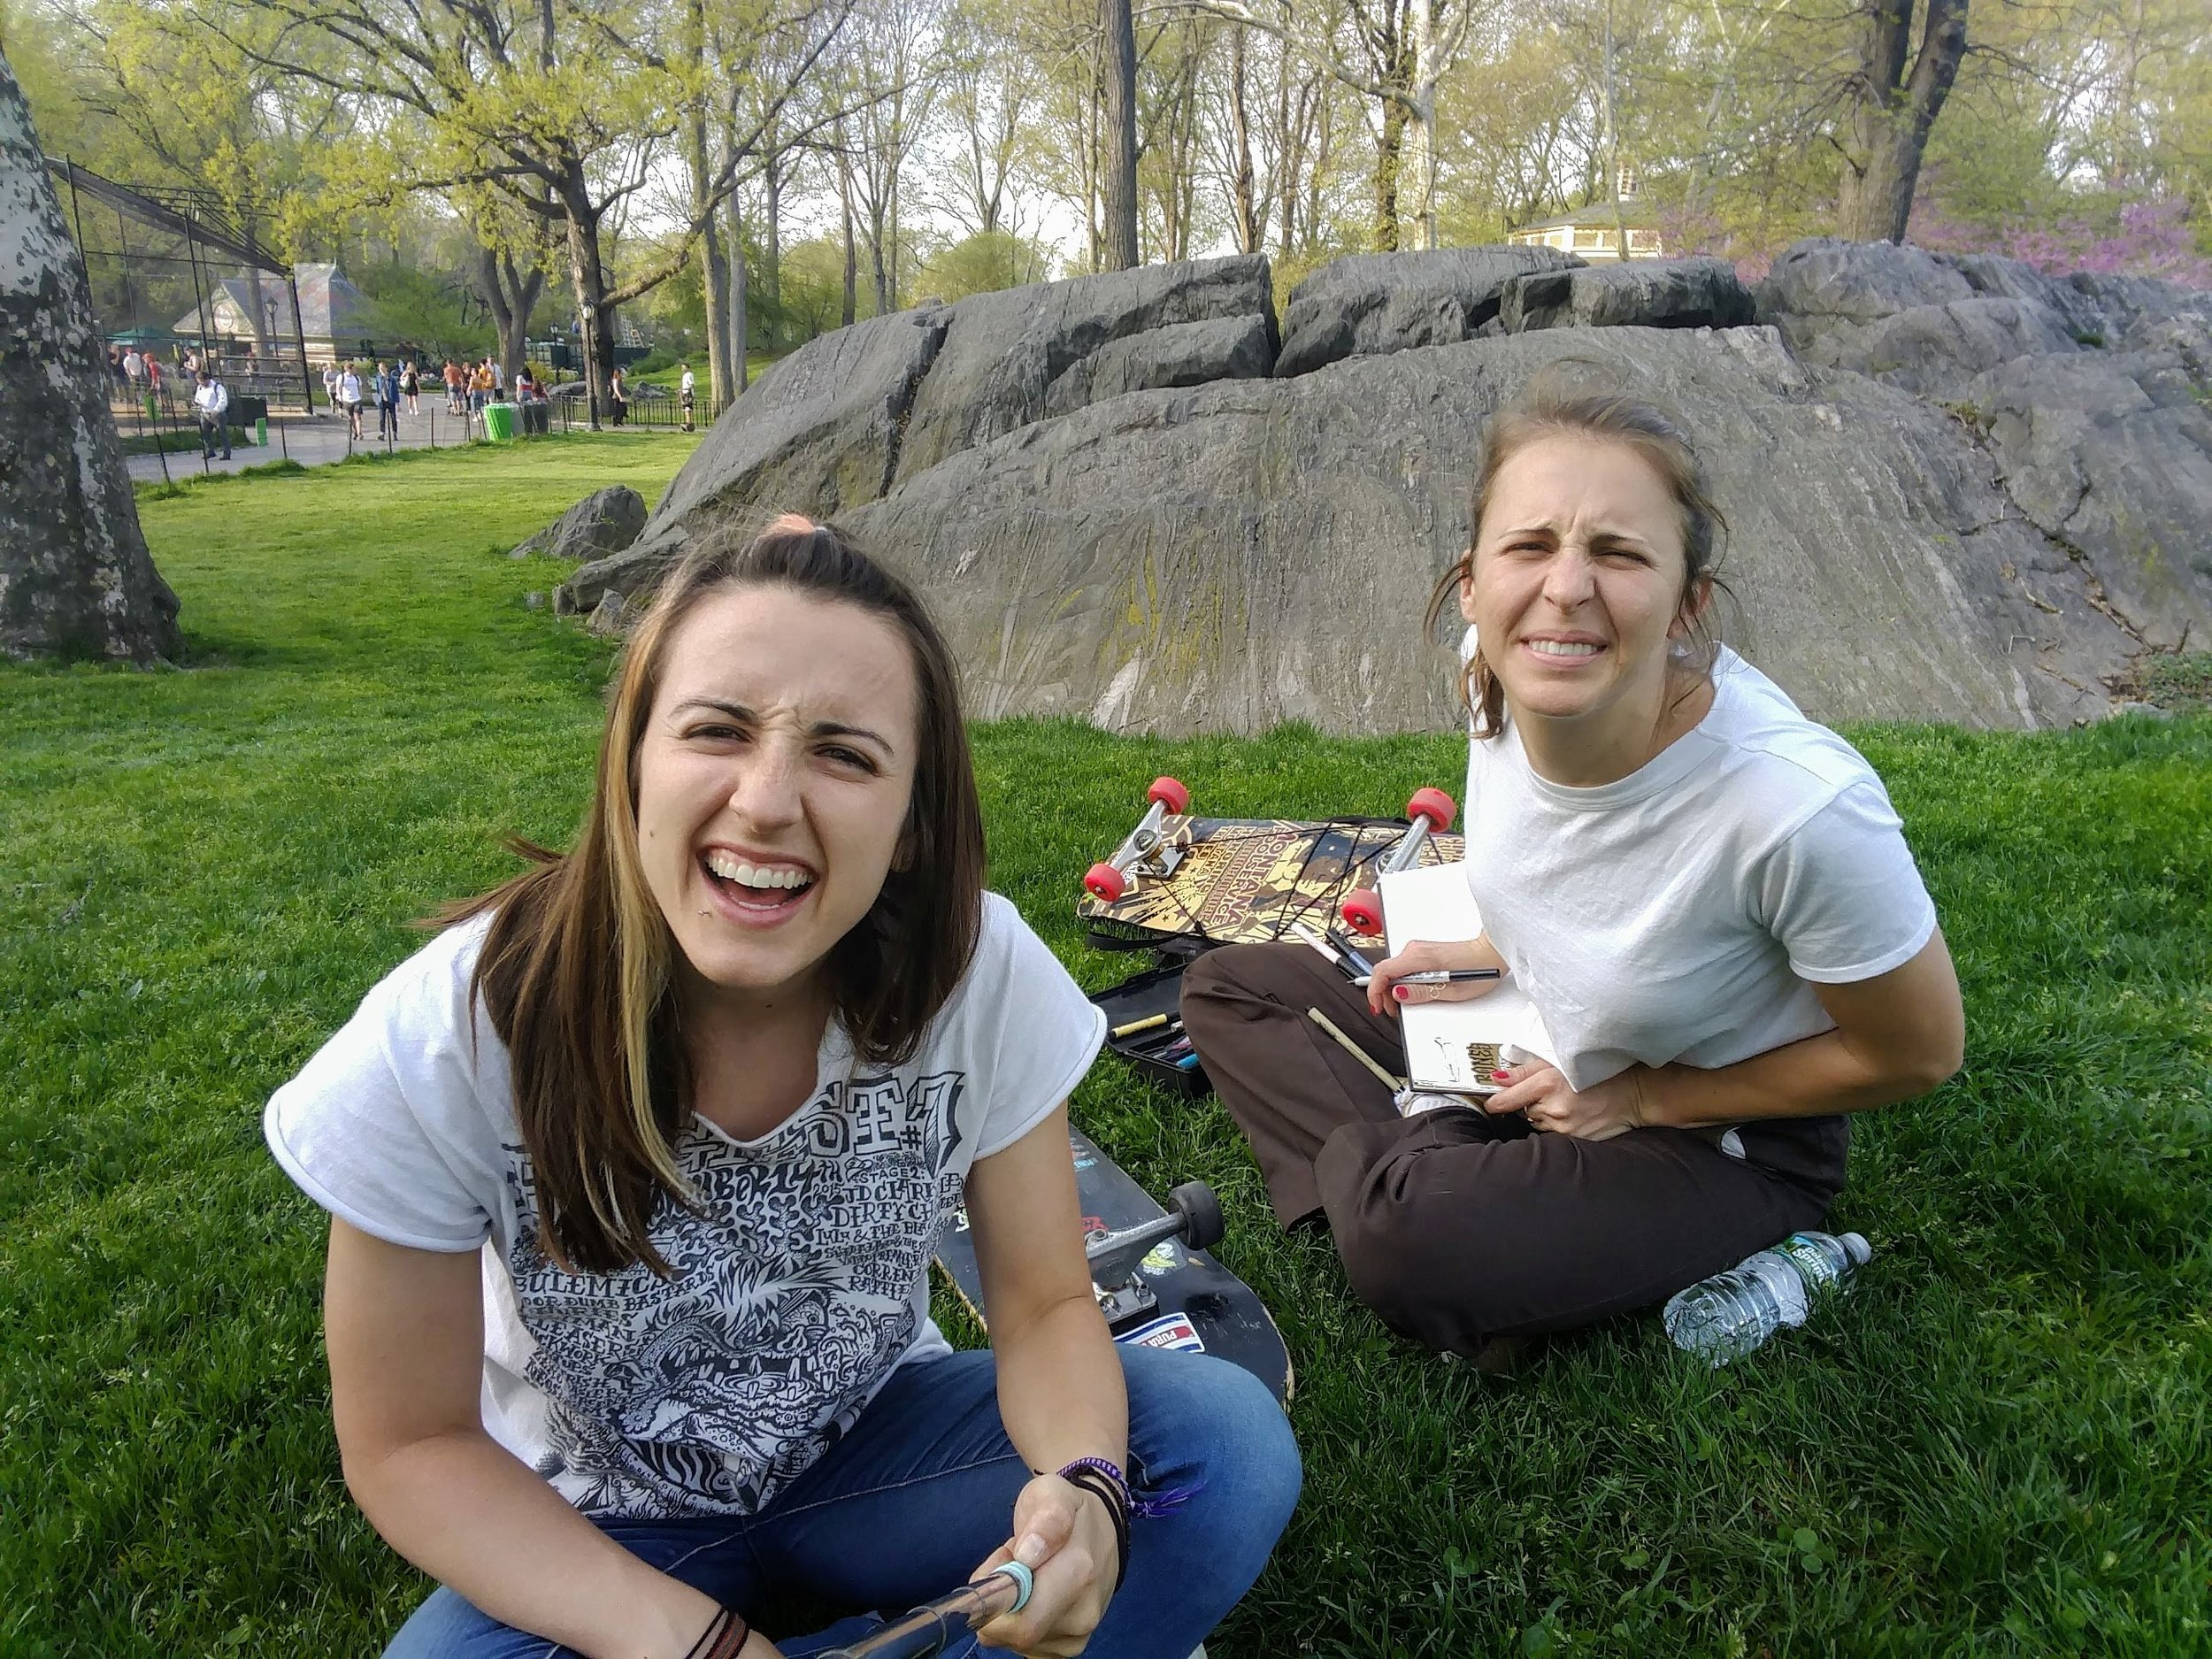 Lounging and drawing in Central Park: attempt 1